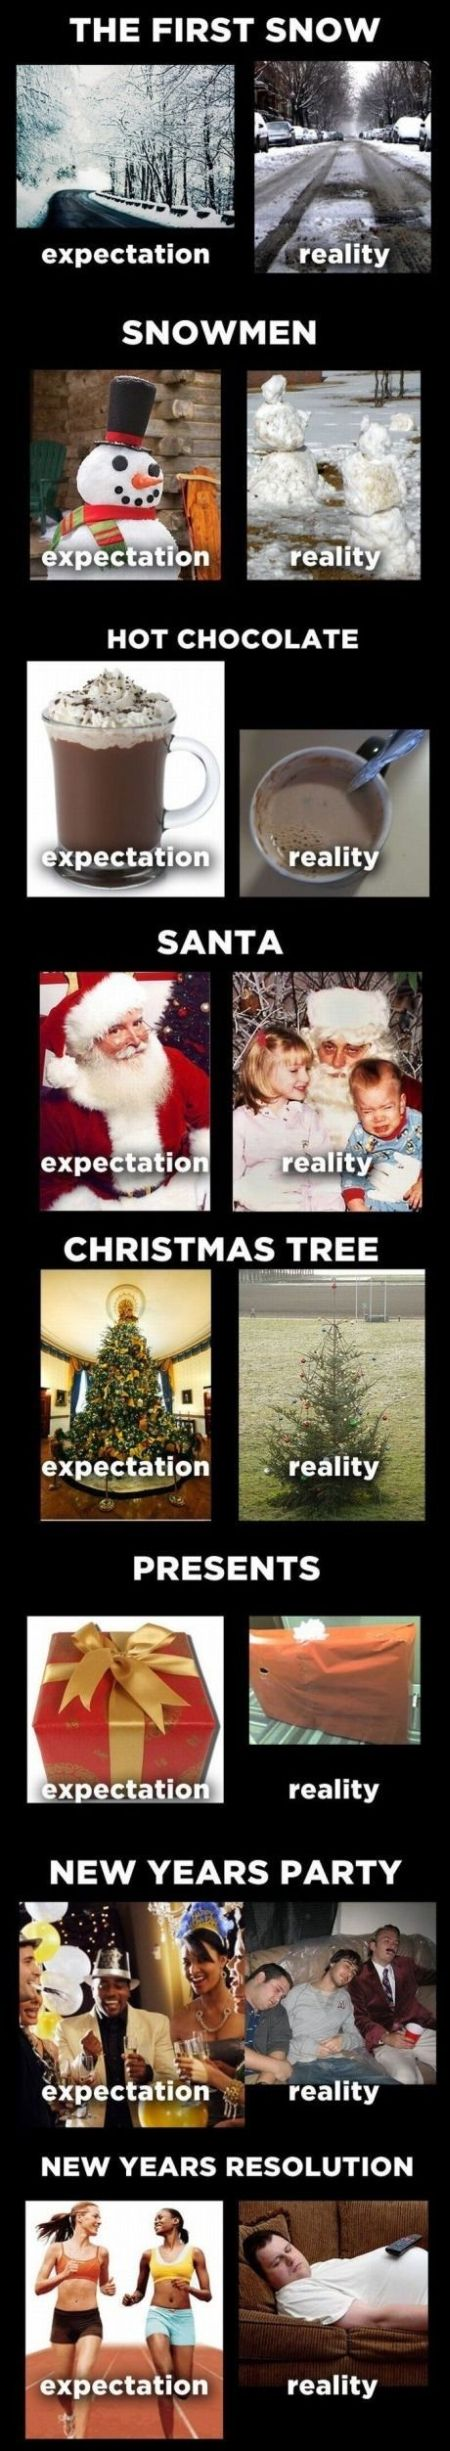 Winter expectations versus reality - Christmas funnies at PMSLweb.com